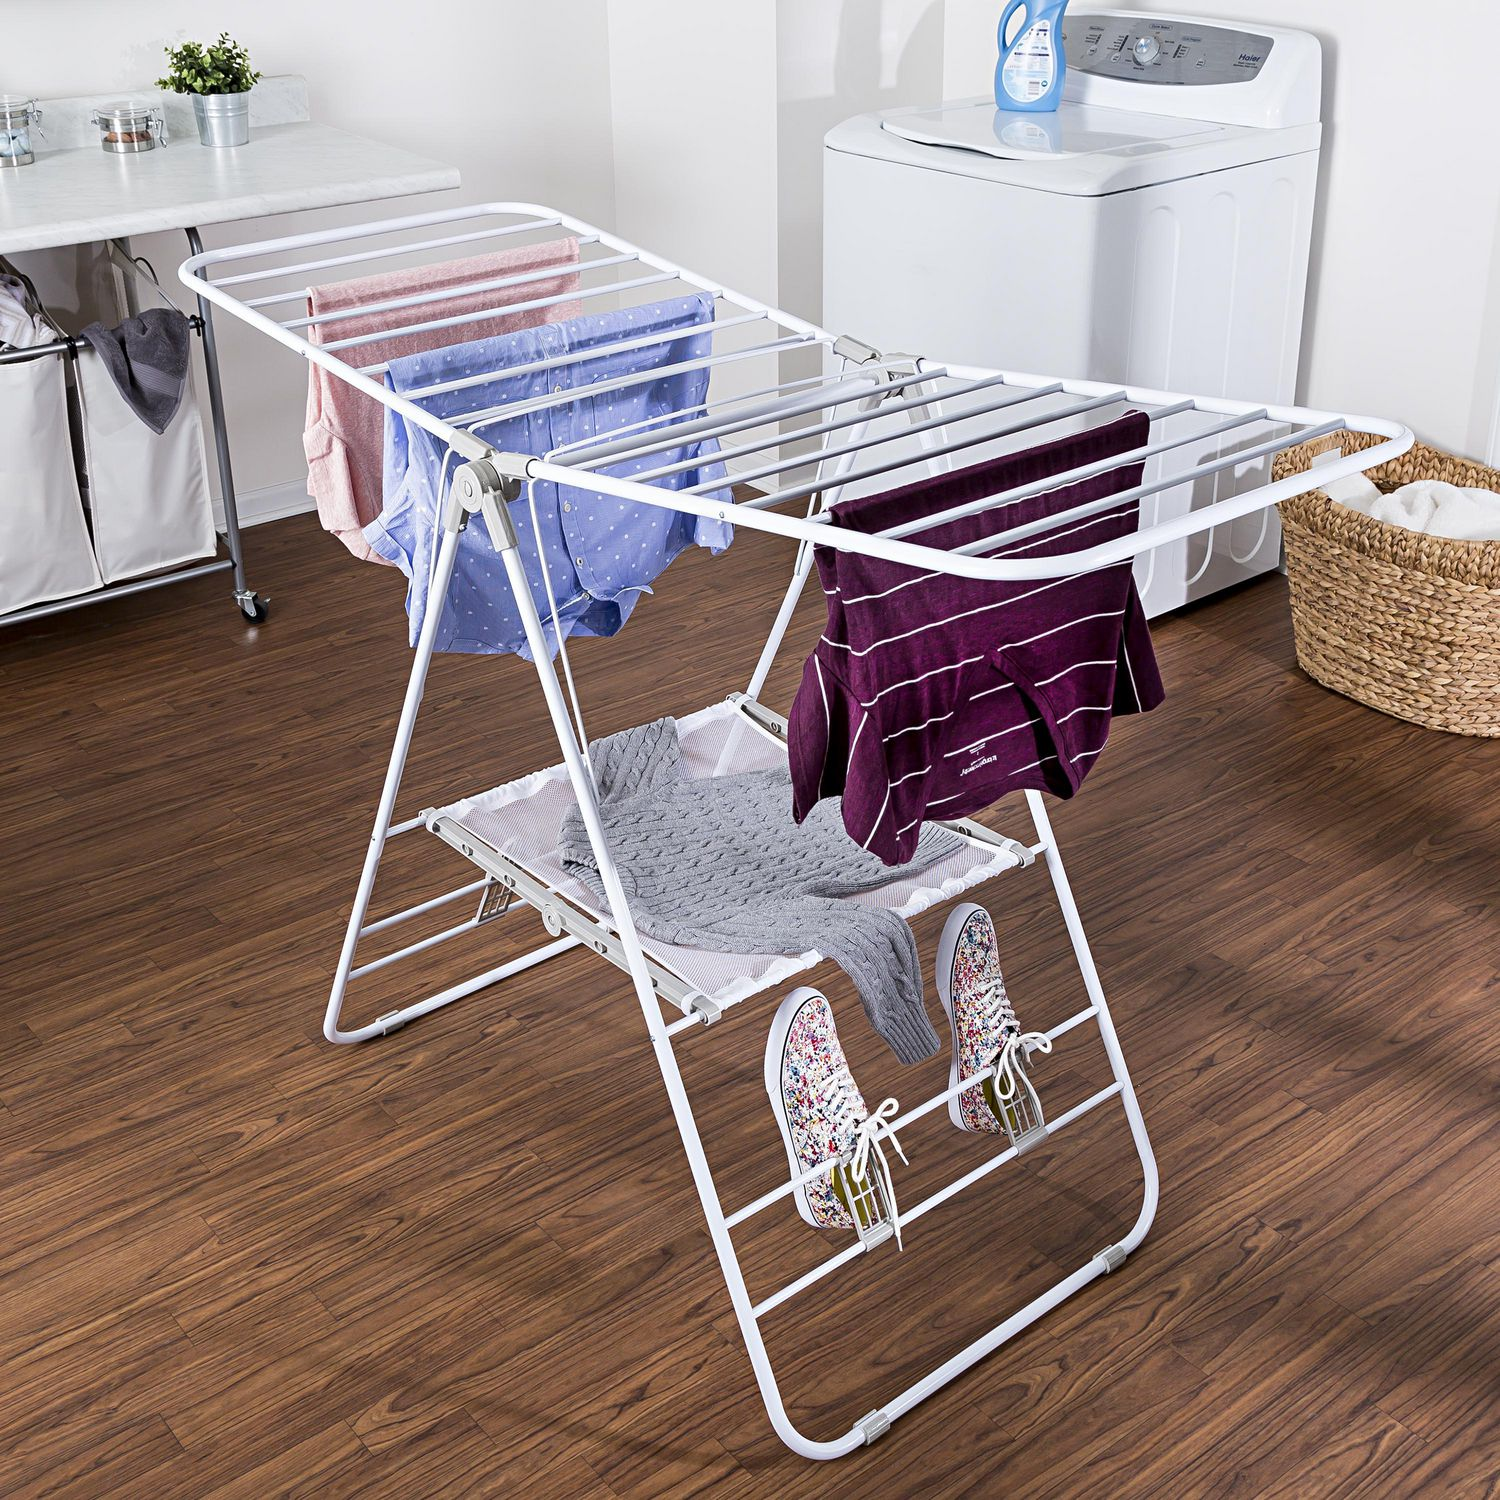 free other bathroom com drying pp gearbest rack accessories shipping clothes